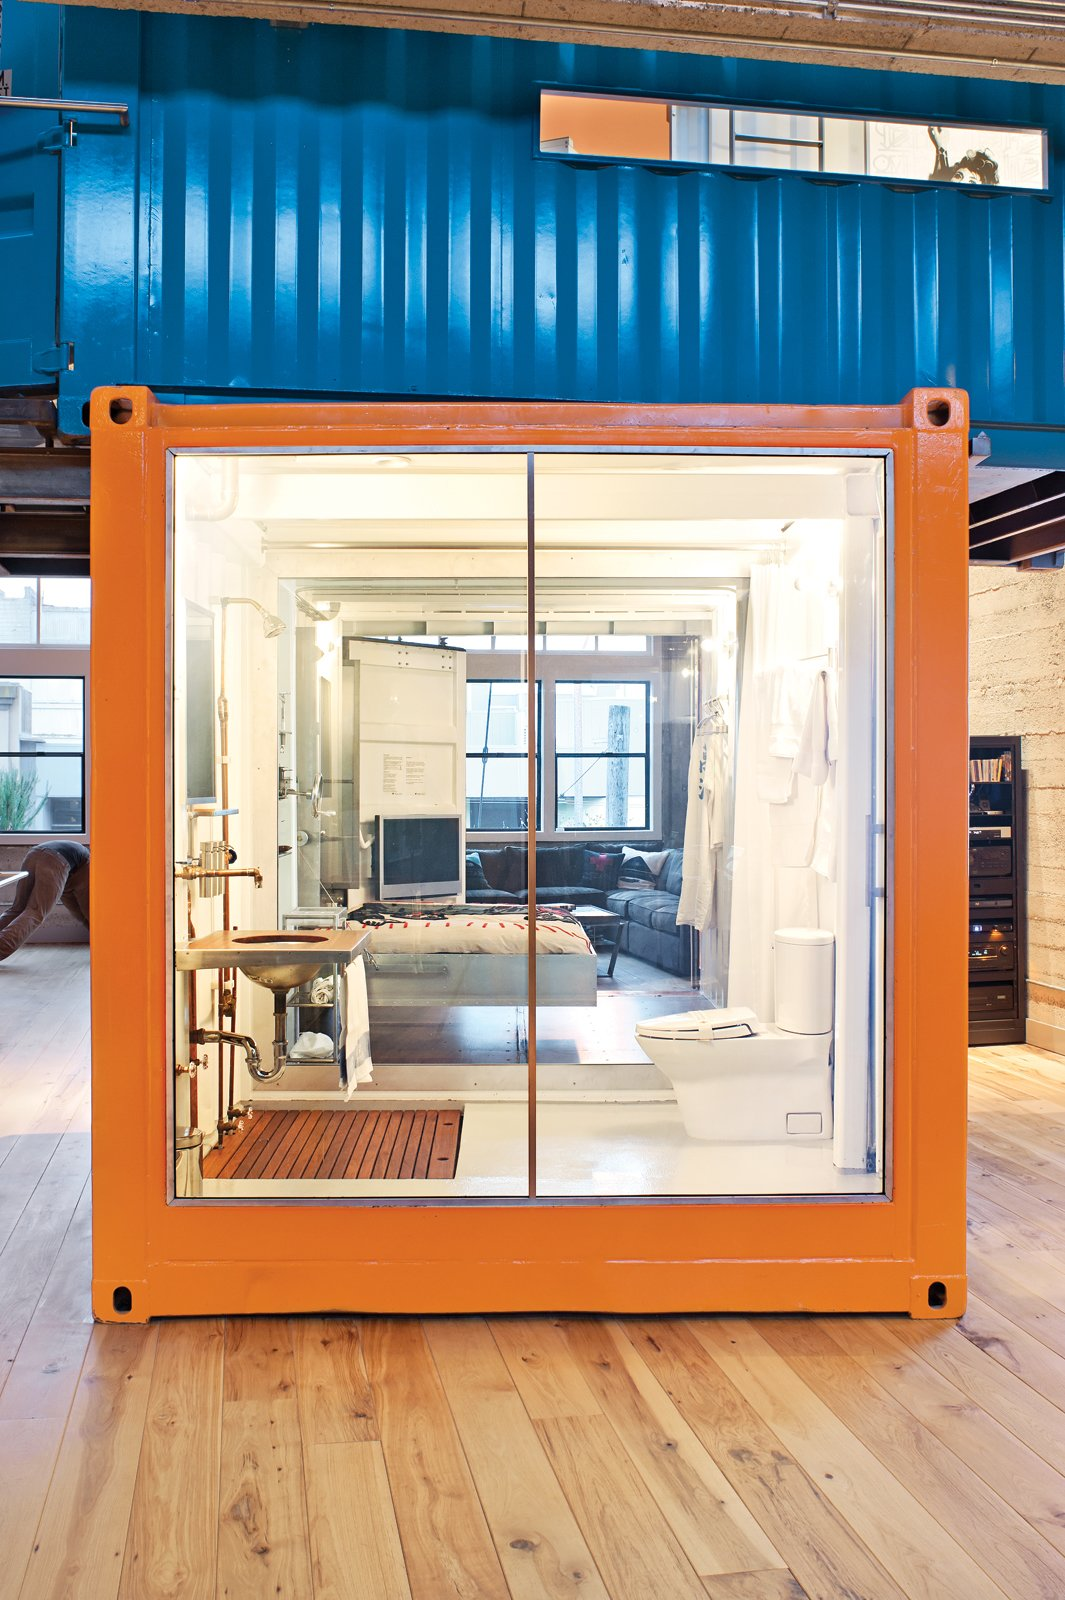 With the flick of a switch, the glass goes from opaque to clear. Tagged: Exterior and Shipping Container Building Type.  Shipping Containers by Dwell from Modern Shipping Container Home in San Francisco